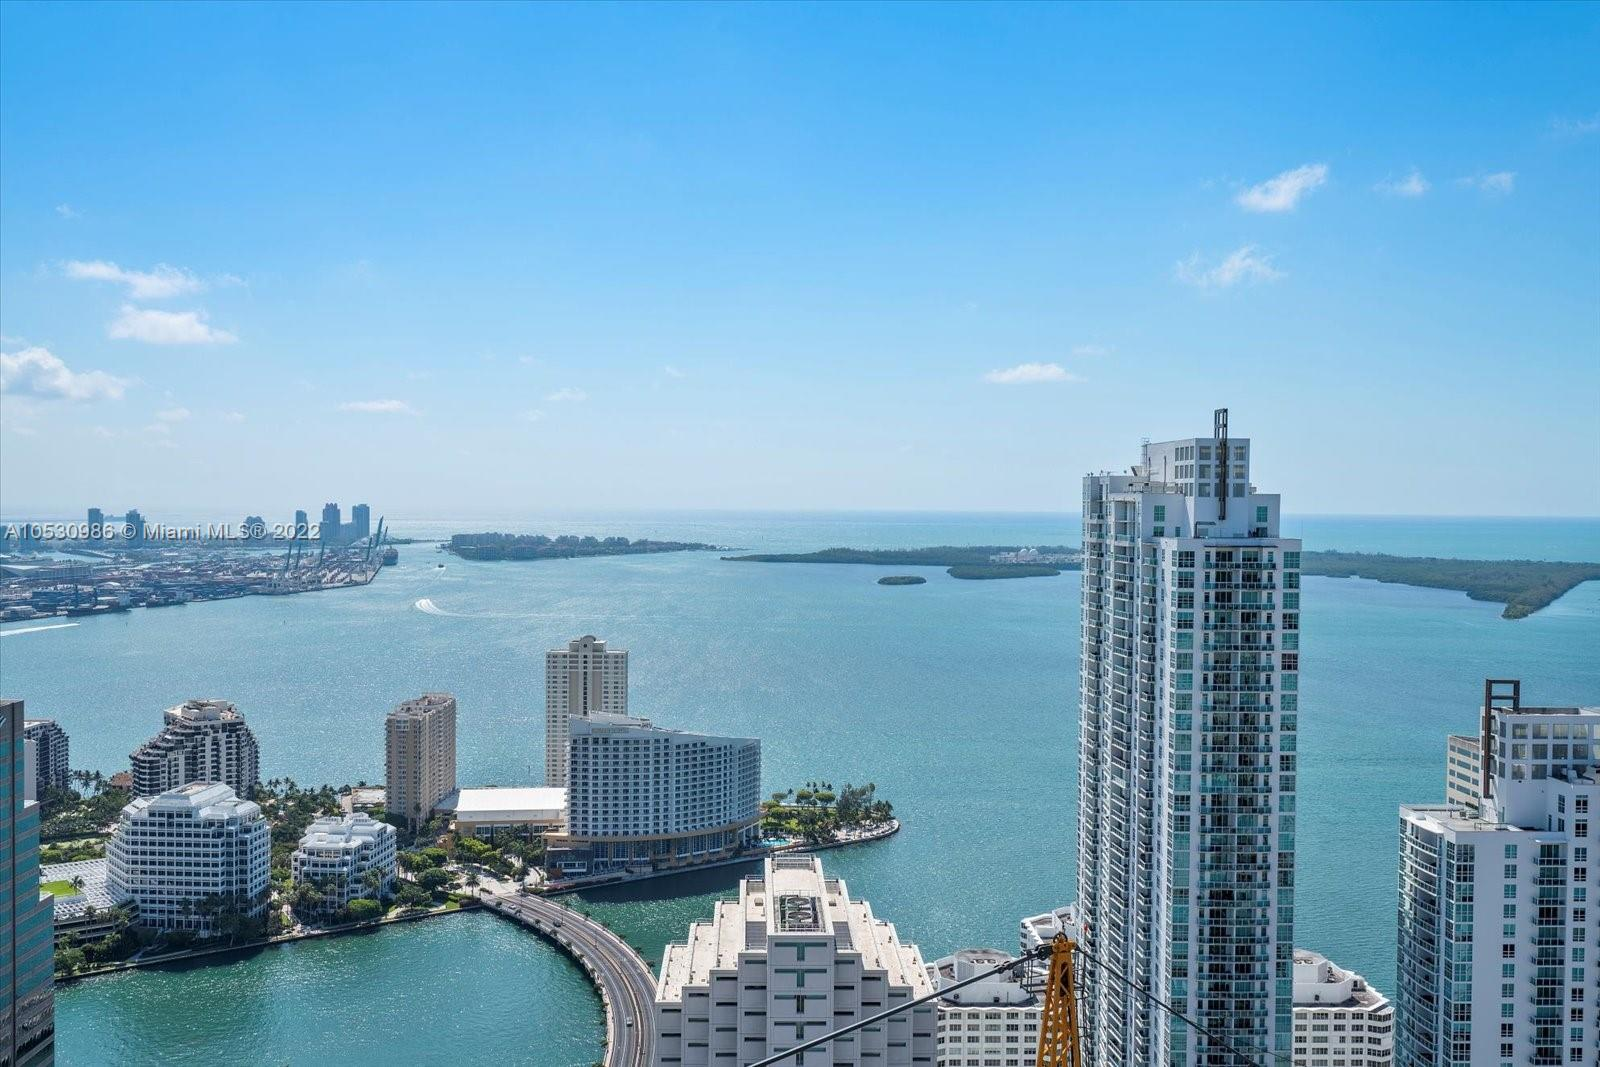 This unit 5505 high floor direct bay view enjoying the sunrise across Biscayne Bay, and at night Miami / Brickell shining through colorful bright lights, is very impressive! Corner residence, wrap around balcony, floor to ceiling glass windows, PRIVATE ELEVATOR, Lounge pool deck with Cabanas, poolside snack/beverage service, Tennis court, Wine & Cigar room, Billiard room, Basketball court, Private Rooftop Sky Pool for residents only, 24/7 concierge service, Complimentary 24 hours Valet parking. Located in front of Brickell City Centre. Celebrity chef KATSUYA RESTAURANT, S Bar & Hotel on premises. RESIDENTS RECEIVE COMPLIMENTARY BEACH CHAIRS AT DELANO HOTEL.